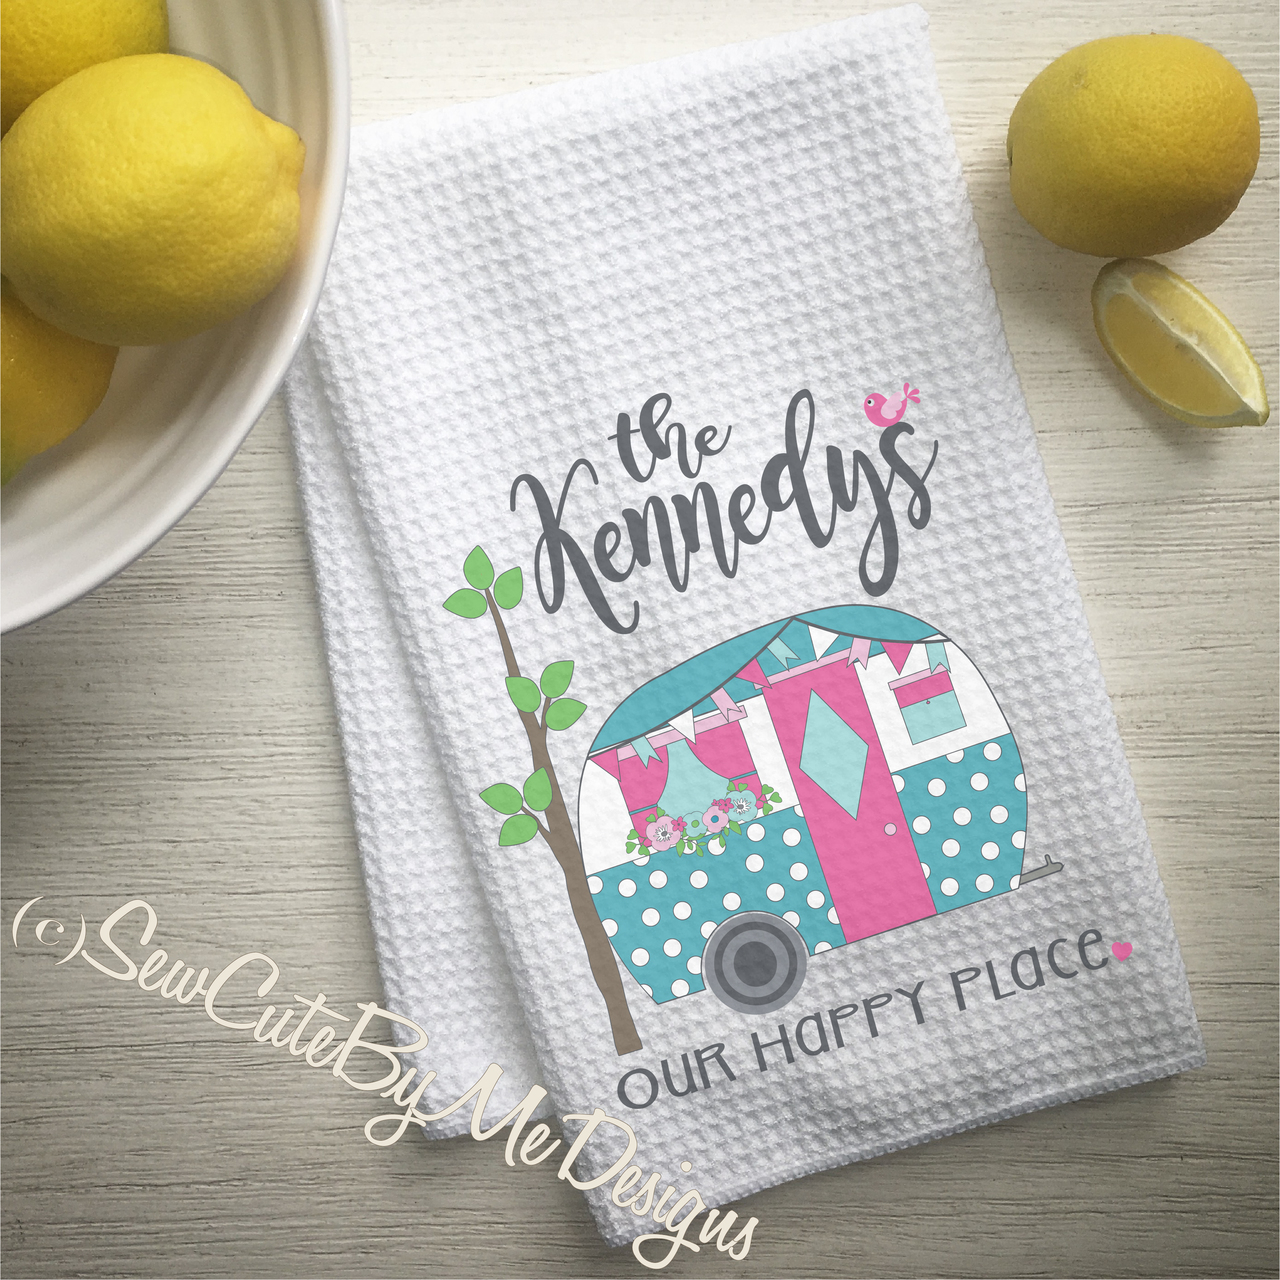 Personalized Camper Kitchen Towel - Personalized Camping Kitchen Towels - Our Happy Place - Aqua Pink